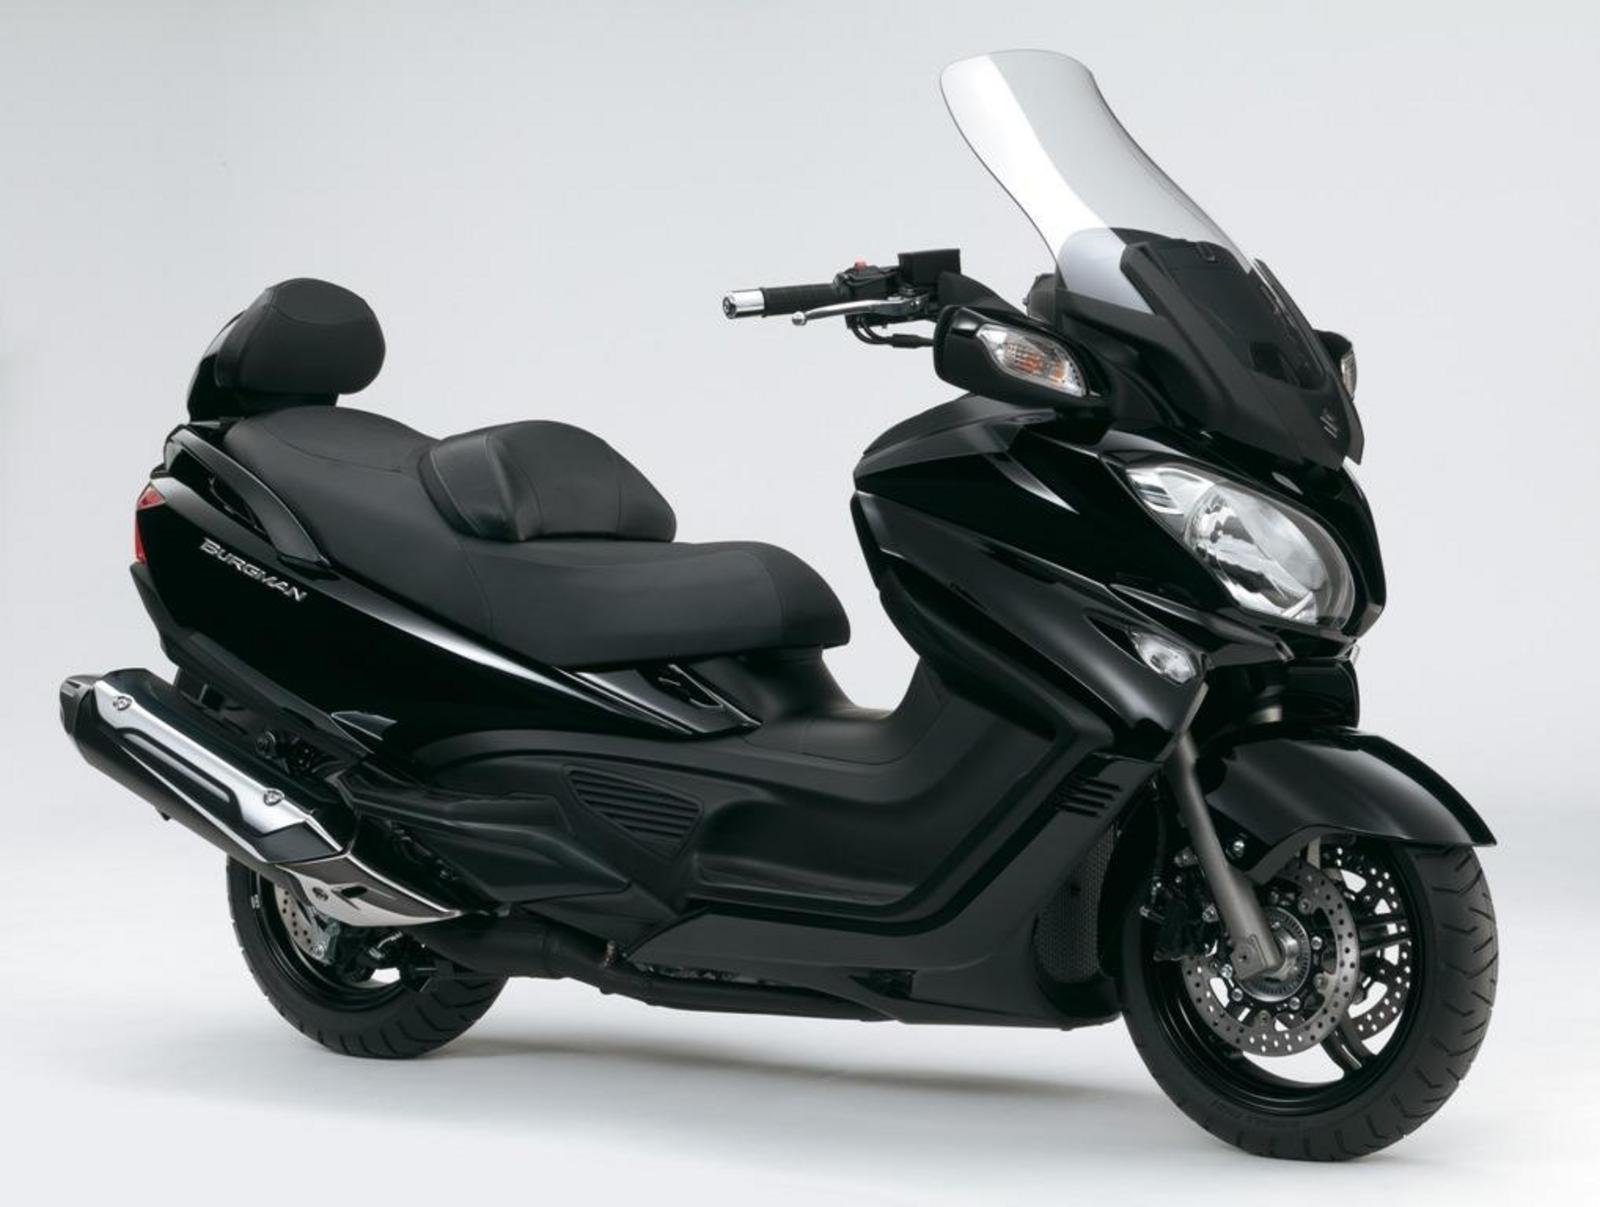 2013 suzuki burgman 650 abs executive review top speed. Black Bedroom Furniture Sets. Home Design Ideas